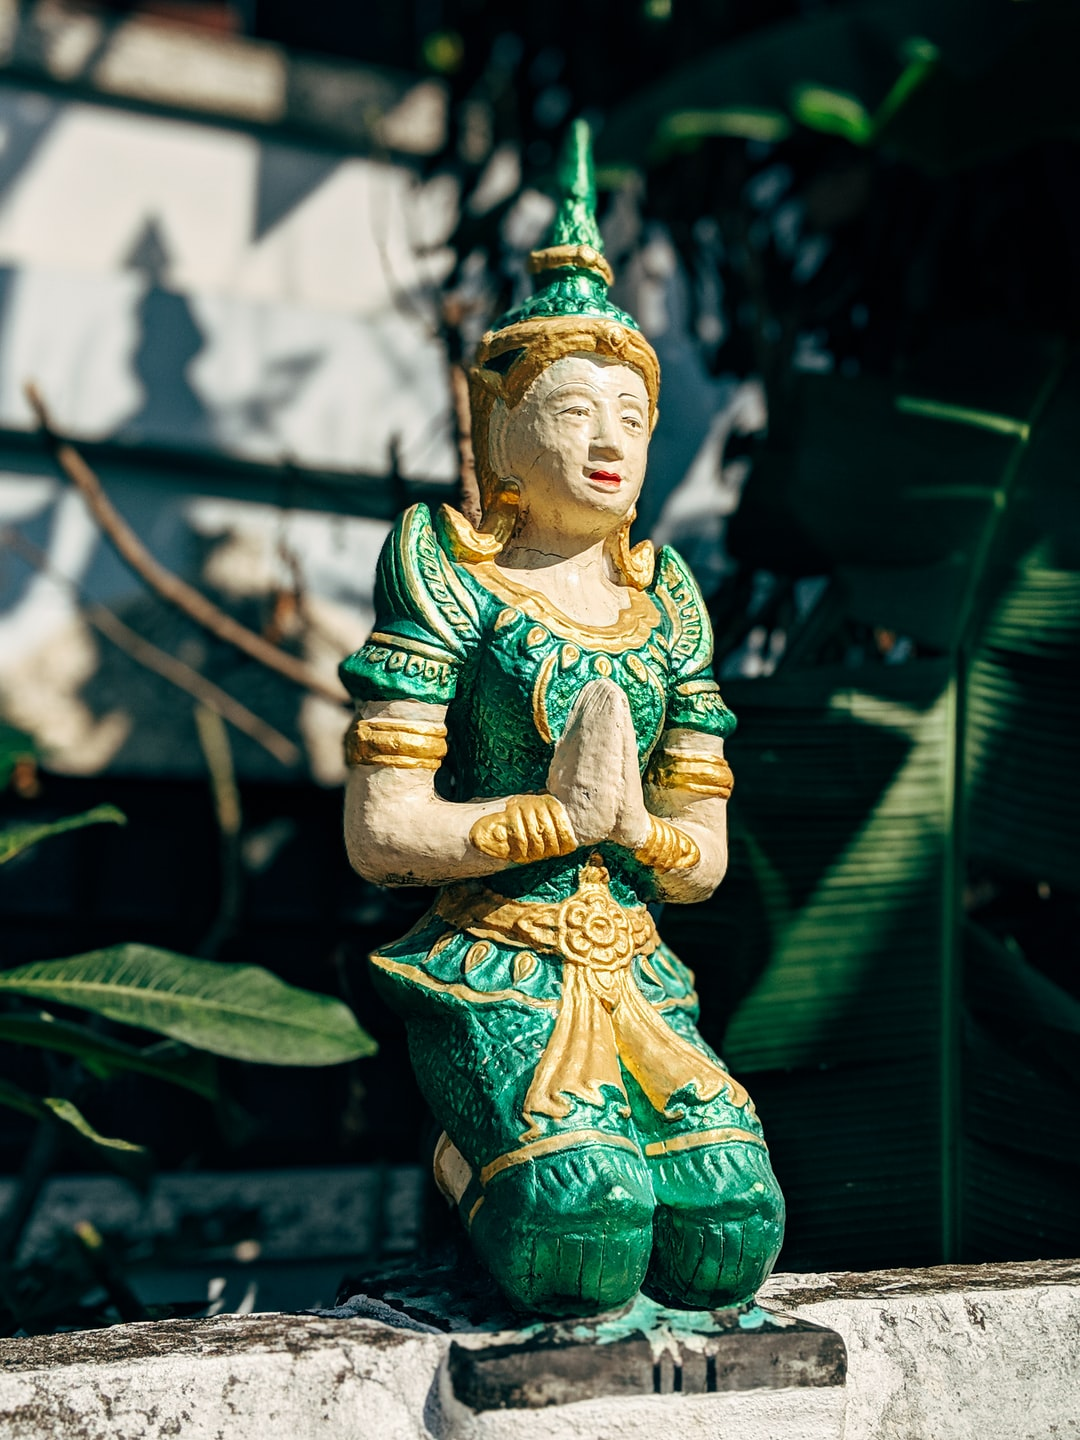 Praying statue with green clothes in Thailand